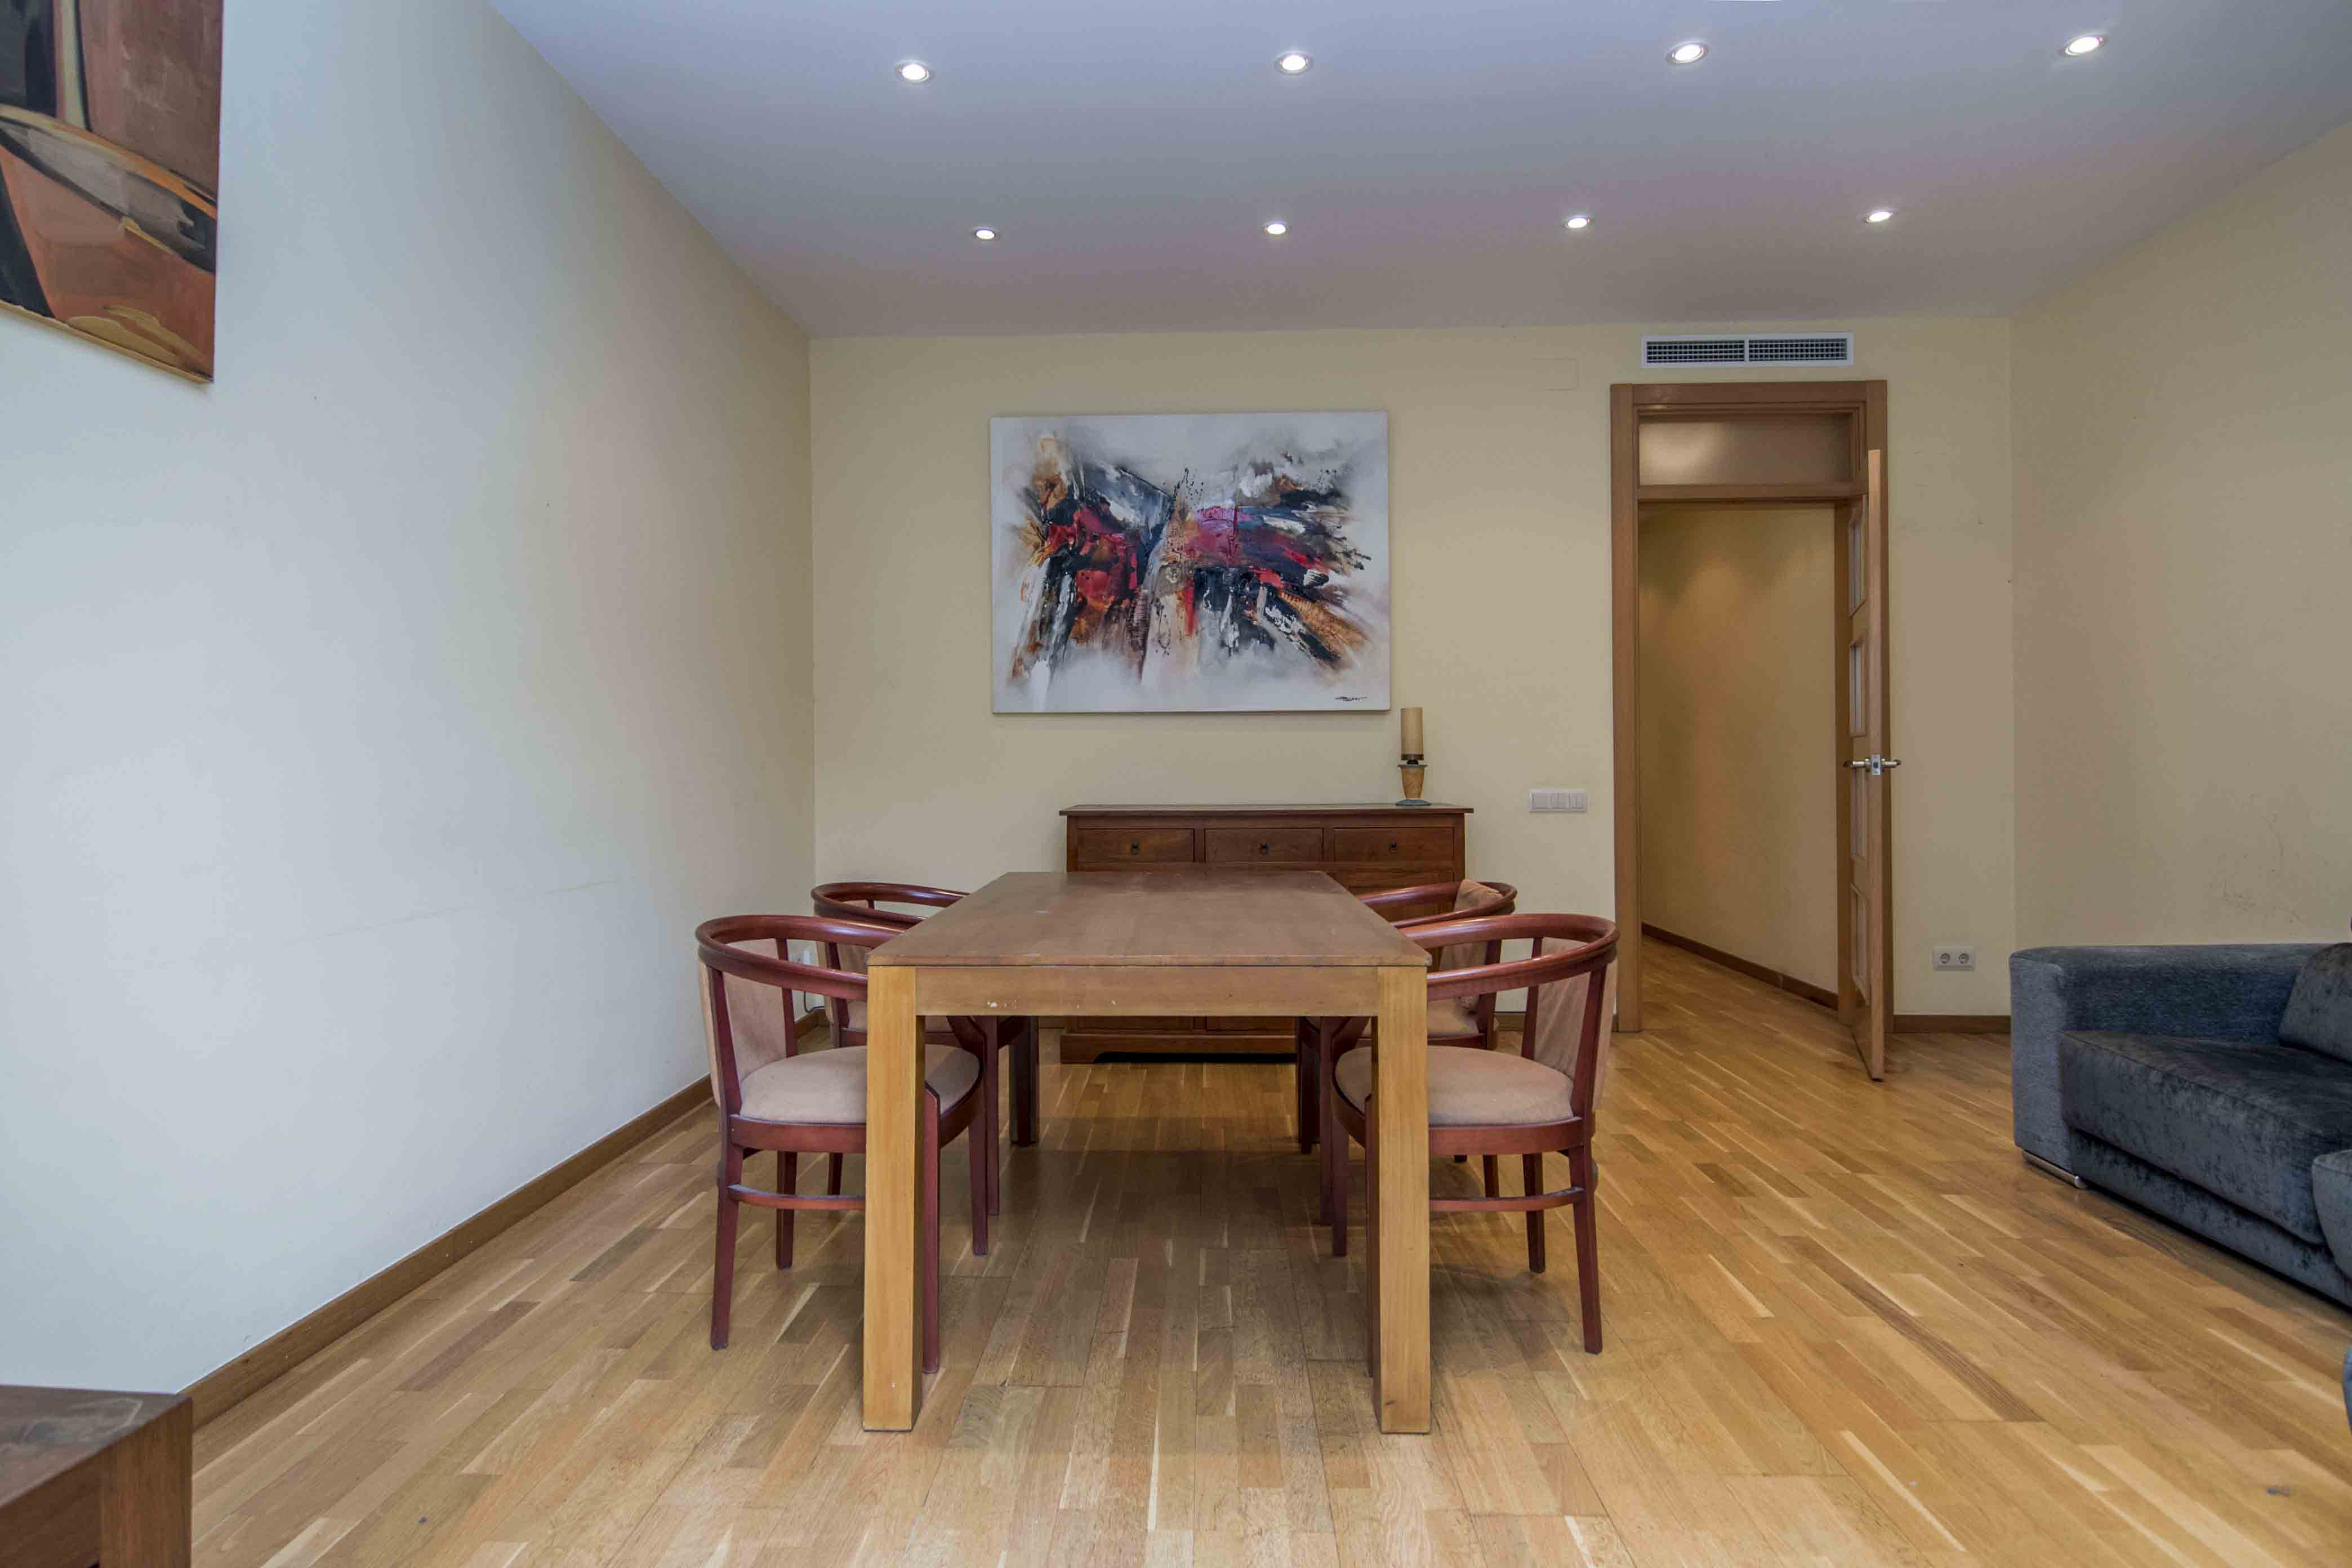 Apartment in Barcelona - eixample. Balcony.3 bedrooms. For sale: 450.000 €.